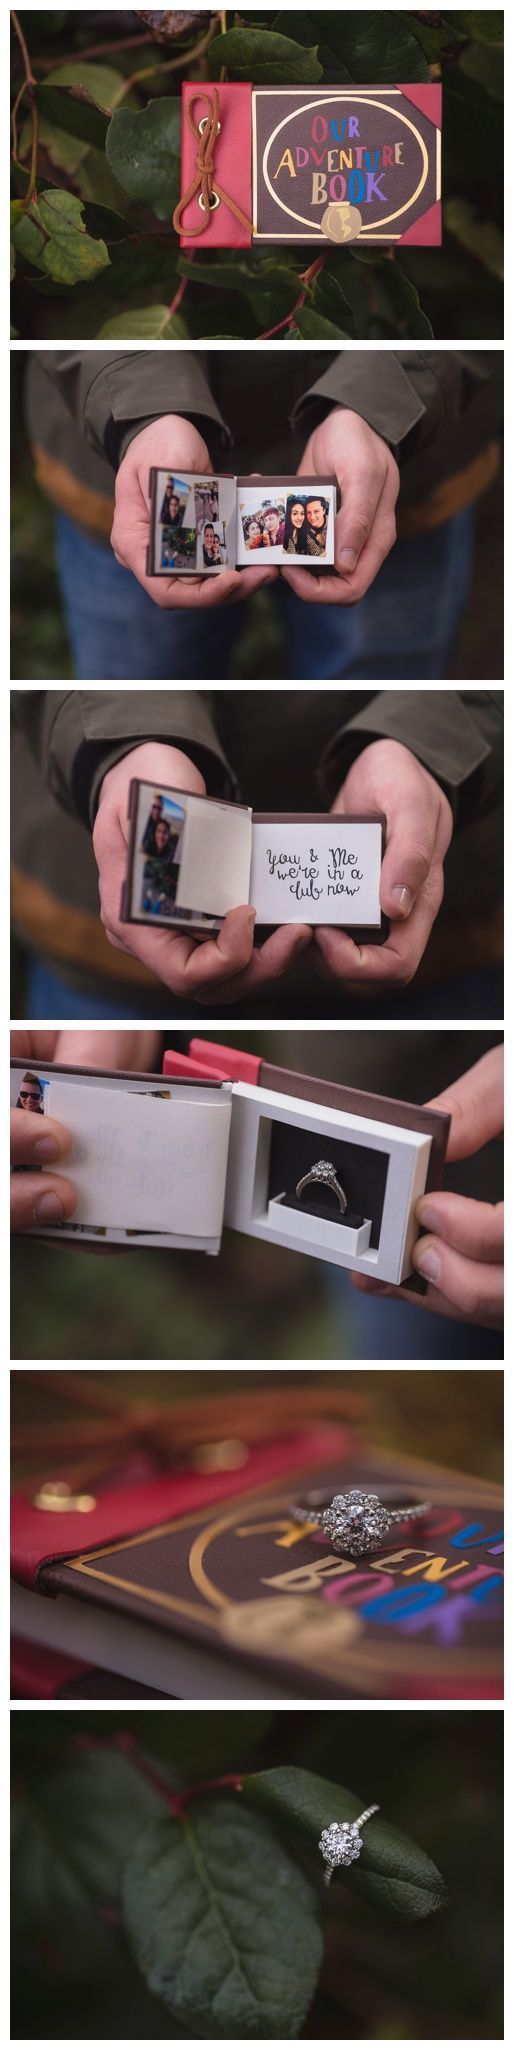 Awesome Custom Ring Box inspired by the movie UP! This was the perfect surprise for this adventurous couple! Watch the Proposal here: www.youtube.com/… - online shopping hand watch, ladies luxury watches, bulova watches *sponsored https://www.pinterest.com/watches_watch/ https://www.pinterest.com/explore/watch/ https://www.pinterest.com/watches_watch/gold-watches-for-women/ https://www.tissotwatches.com/